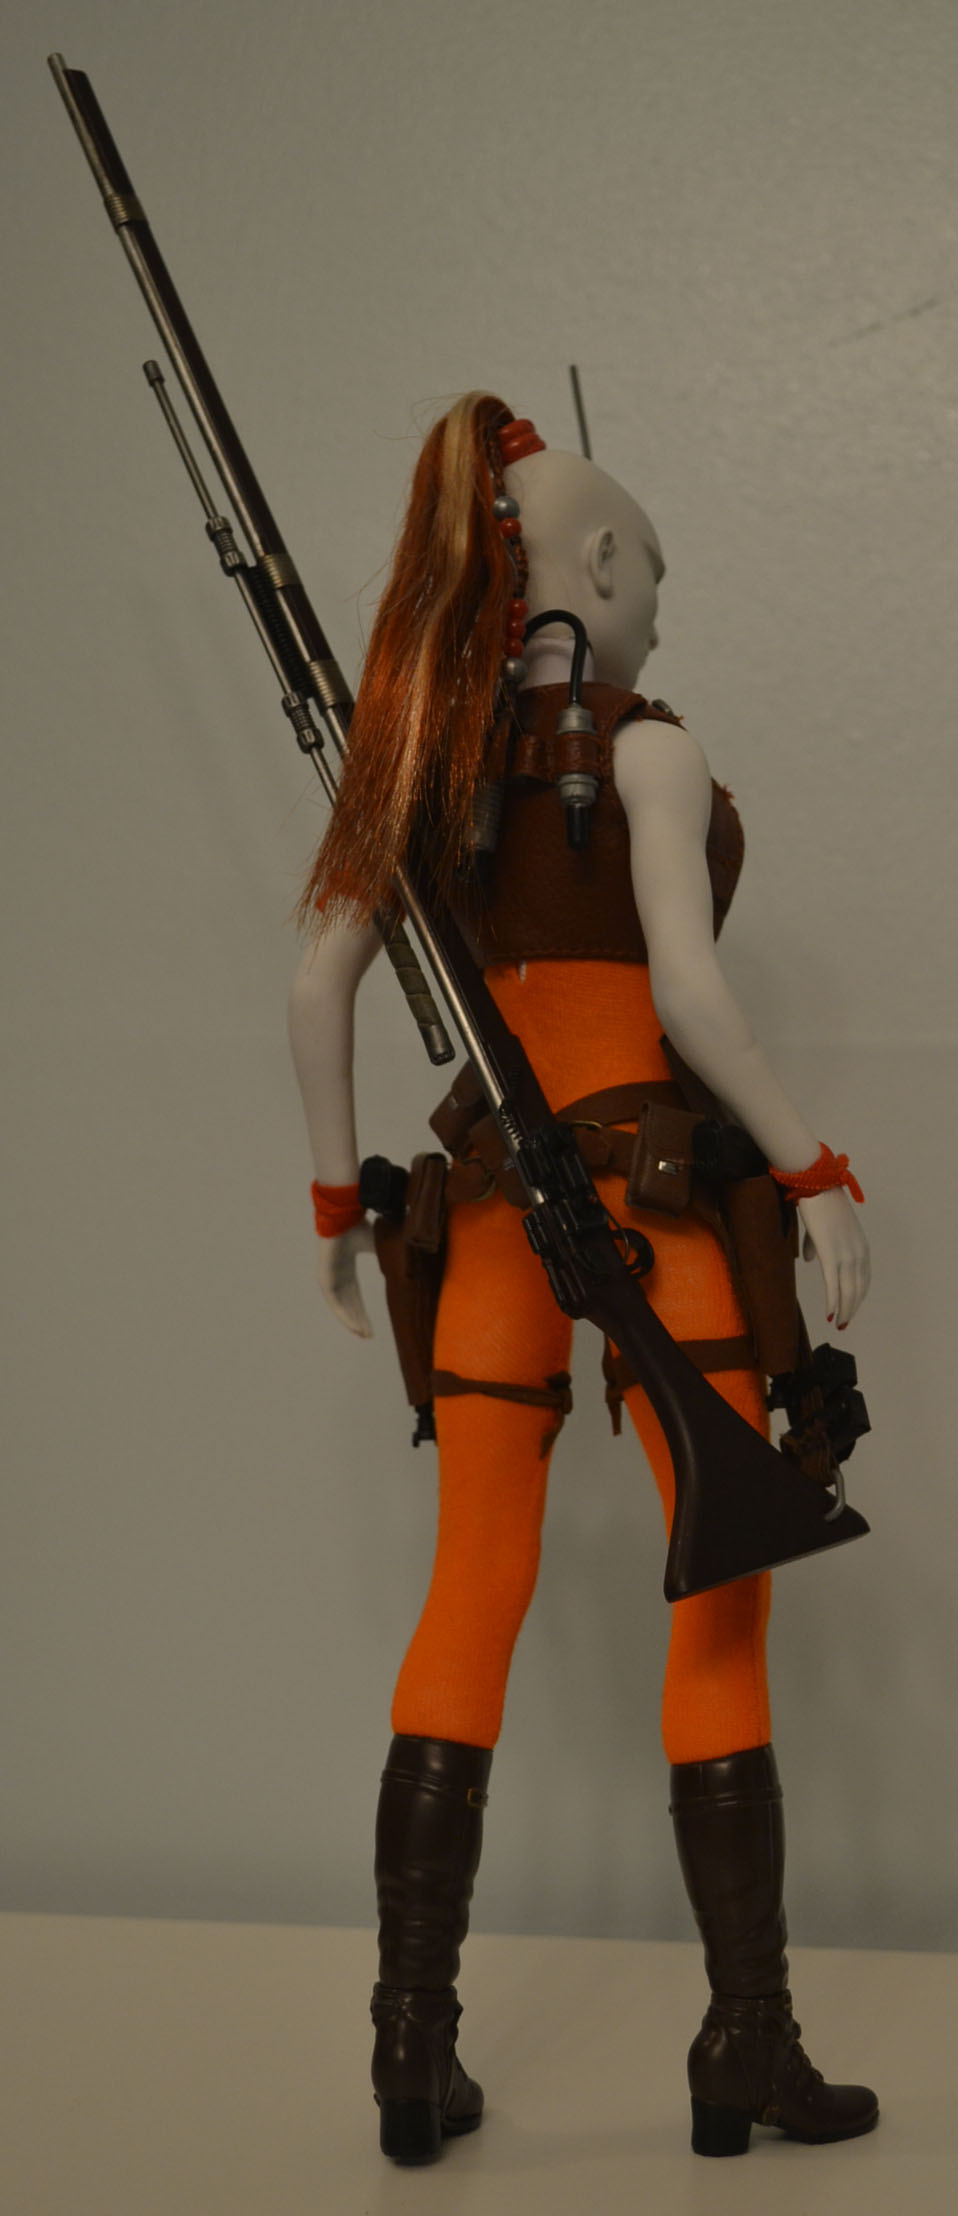 bountyhunter - Custom/Kitbash: Aurra Sing - Star Wars Bounty Hunter (Episode I) _dsc3126